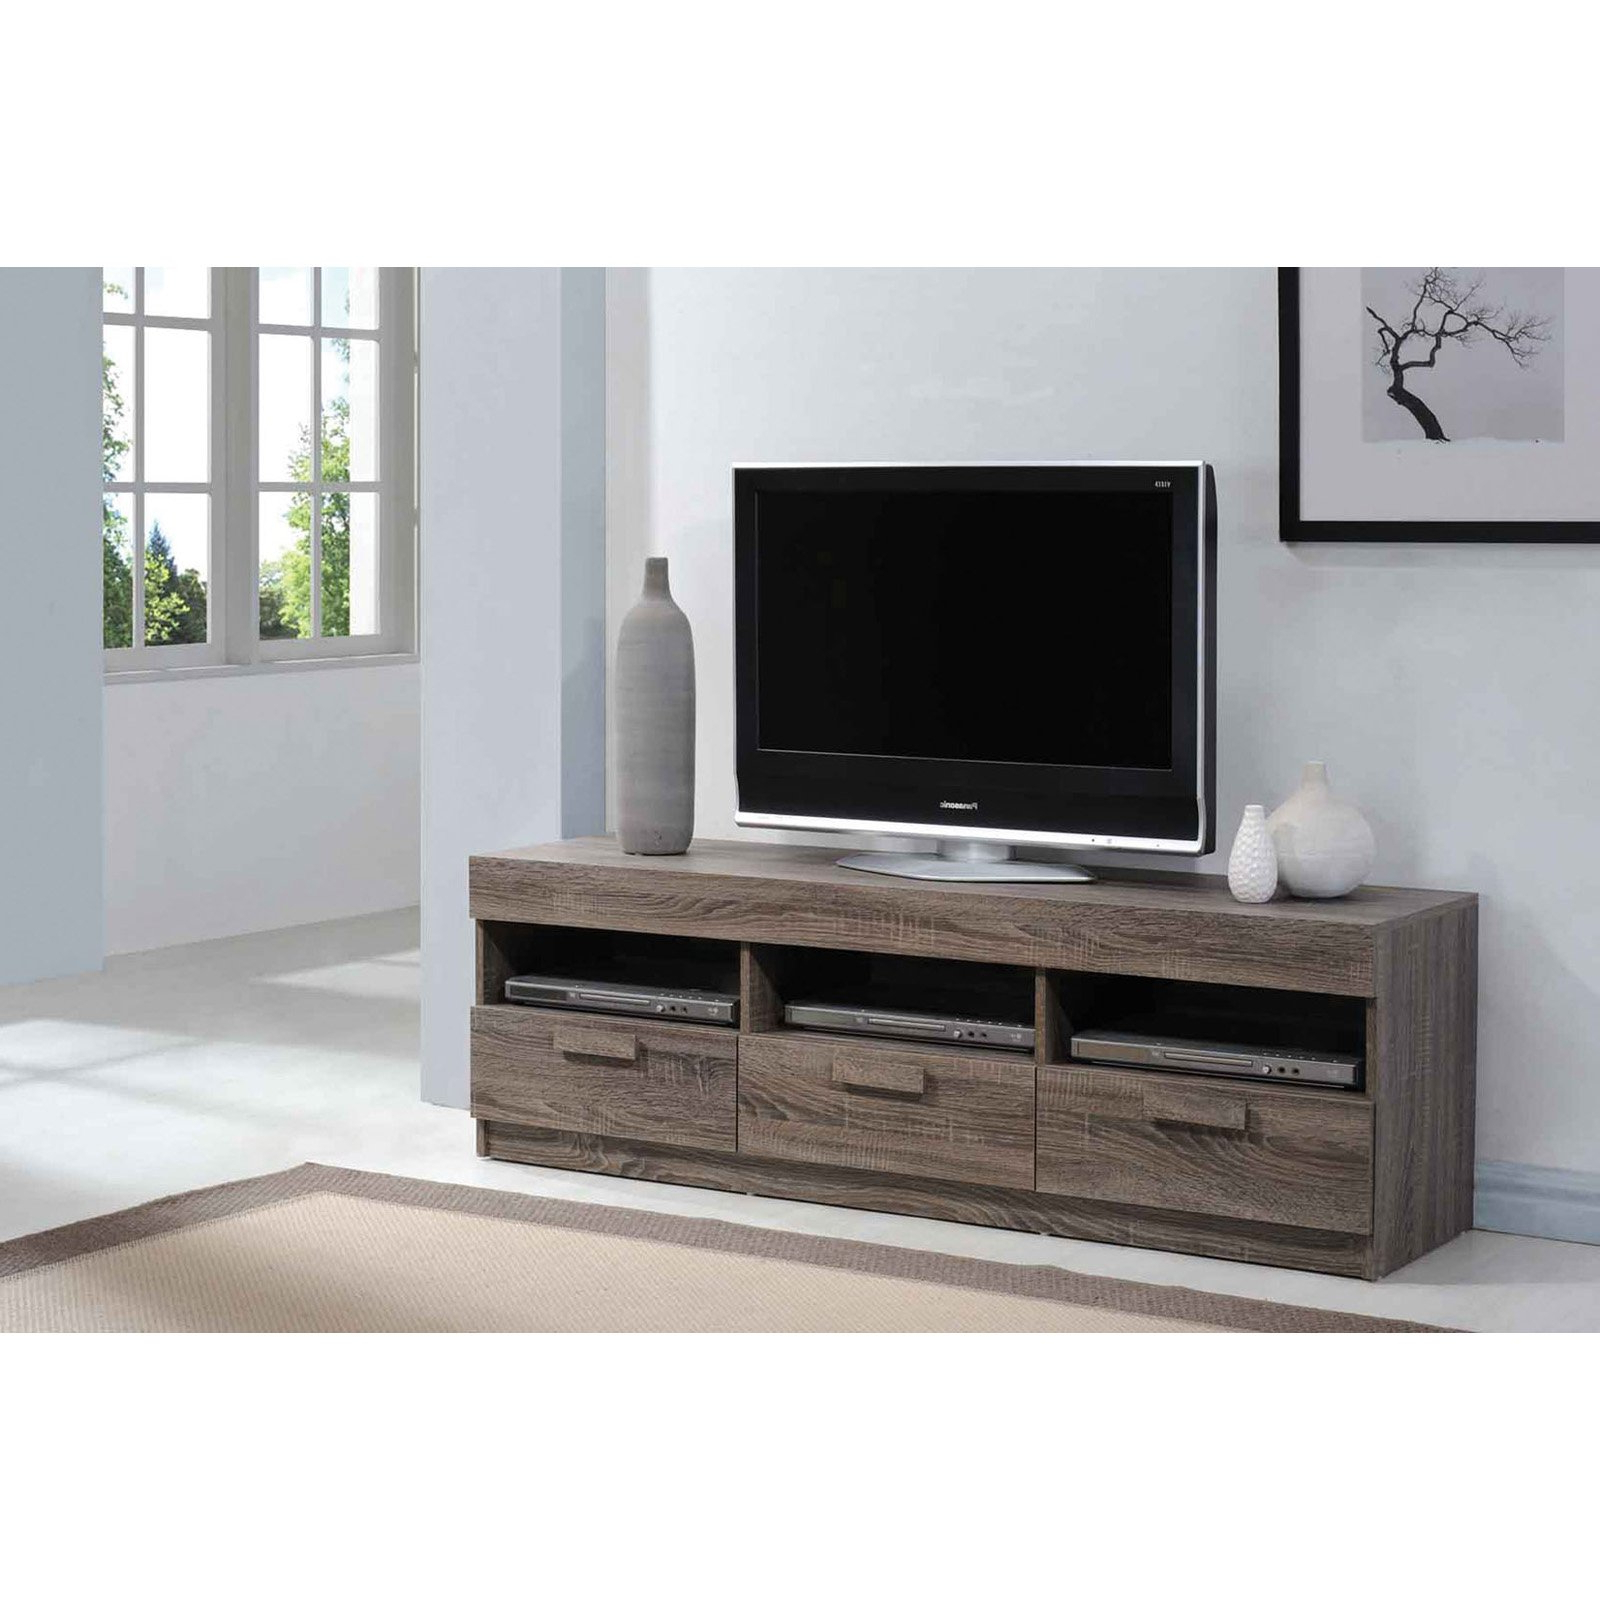 """Acme Alvin Rustic Oak Tv Stand For Flat Screen Tvs Up To With Ahana Tv Stands For Tvs Up To 60"""" (View 7 of 20)"""